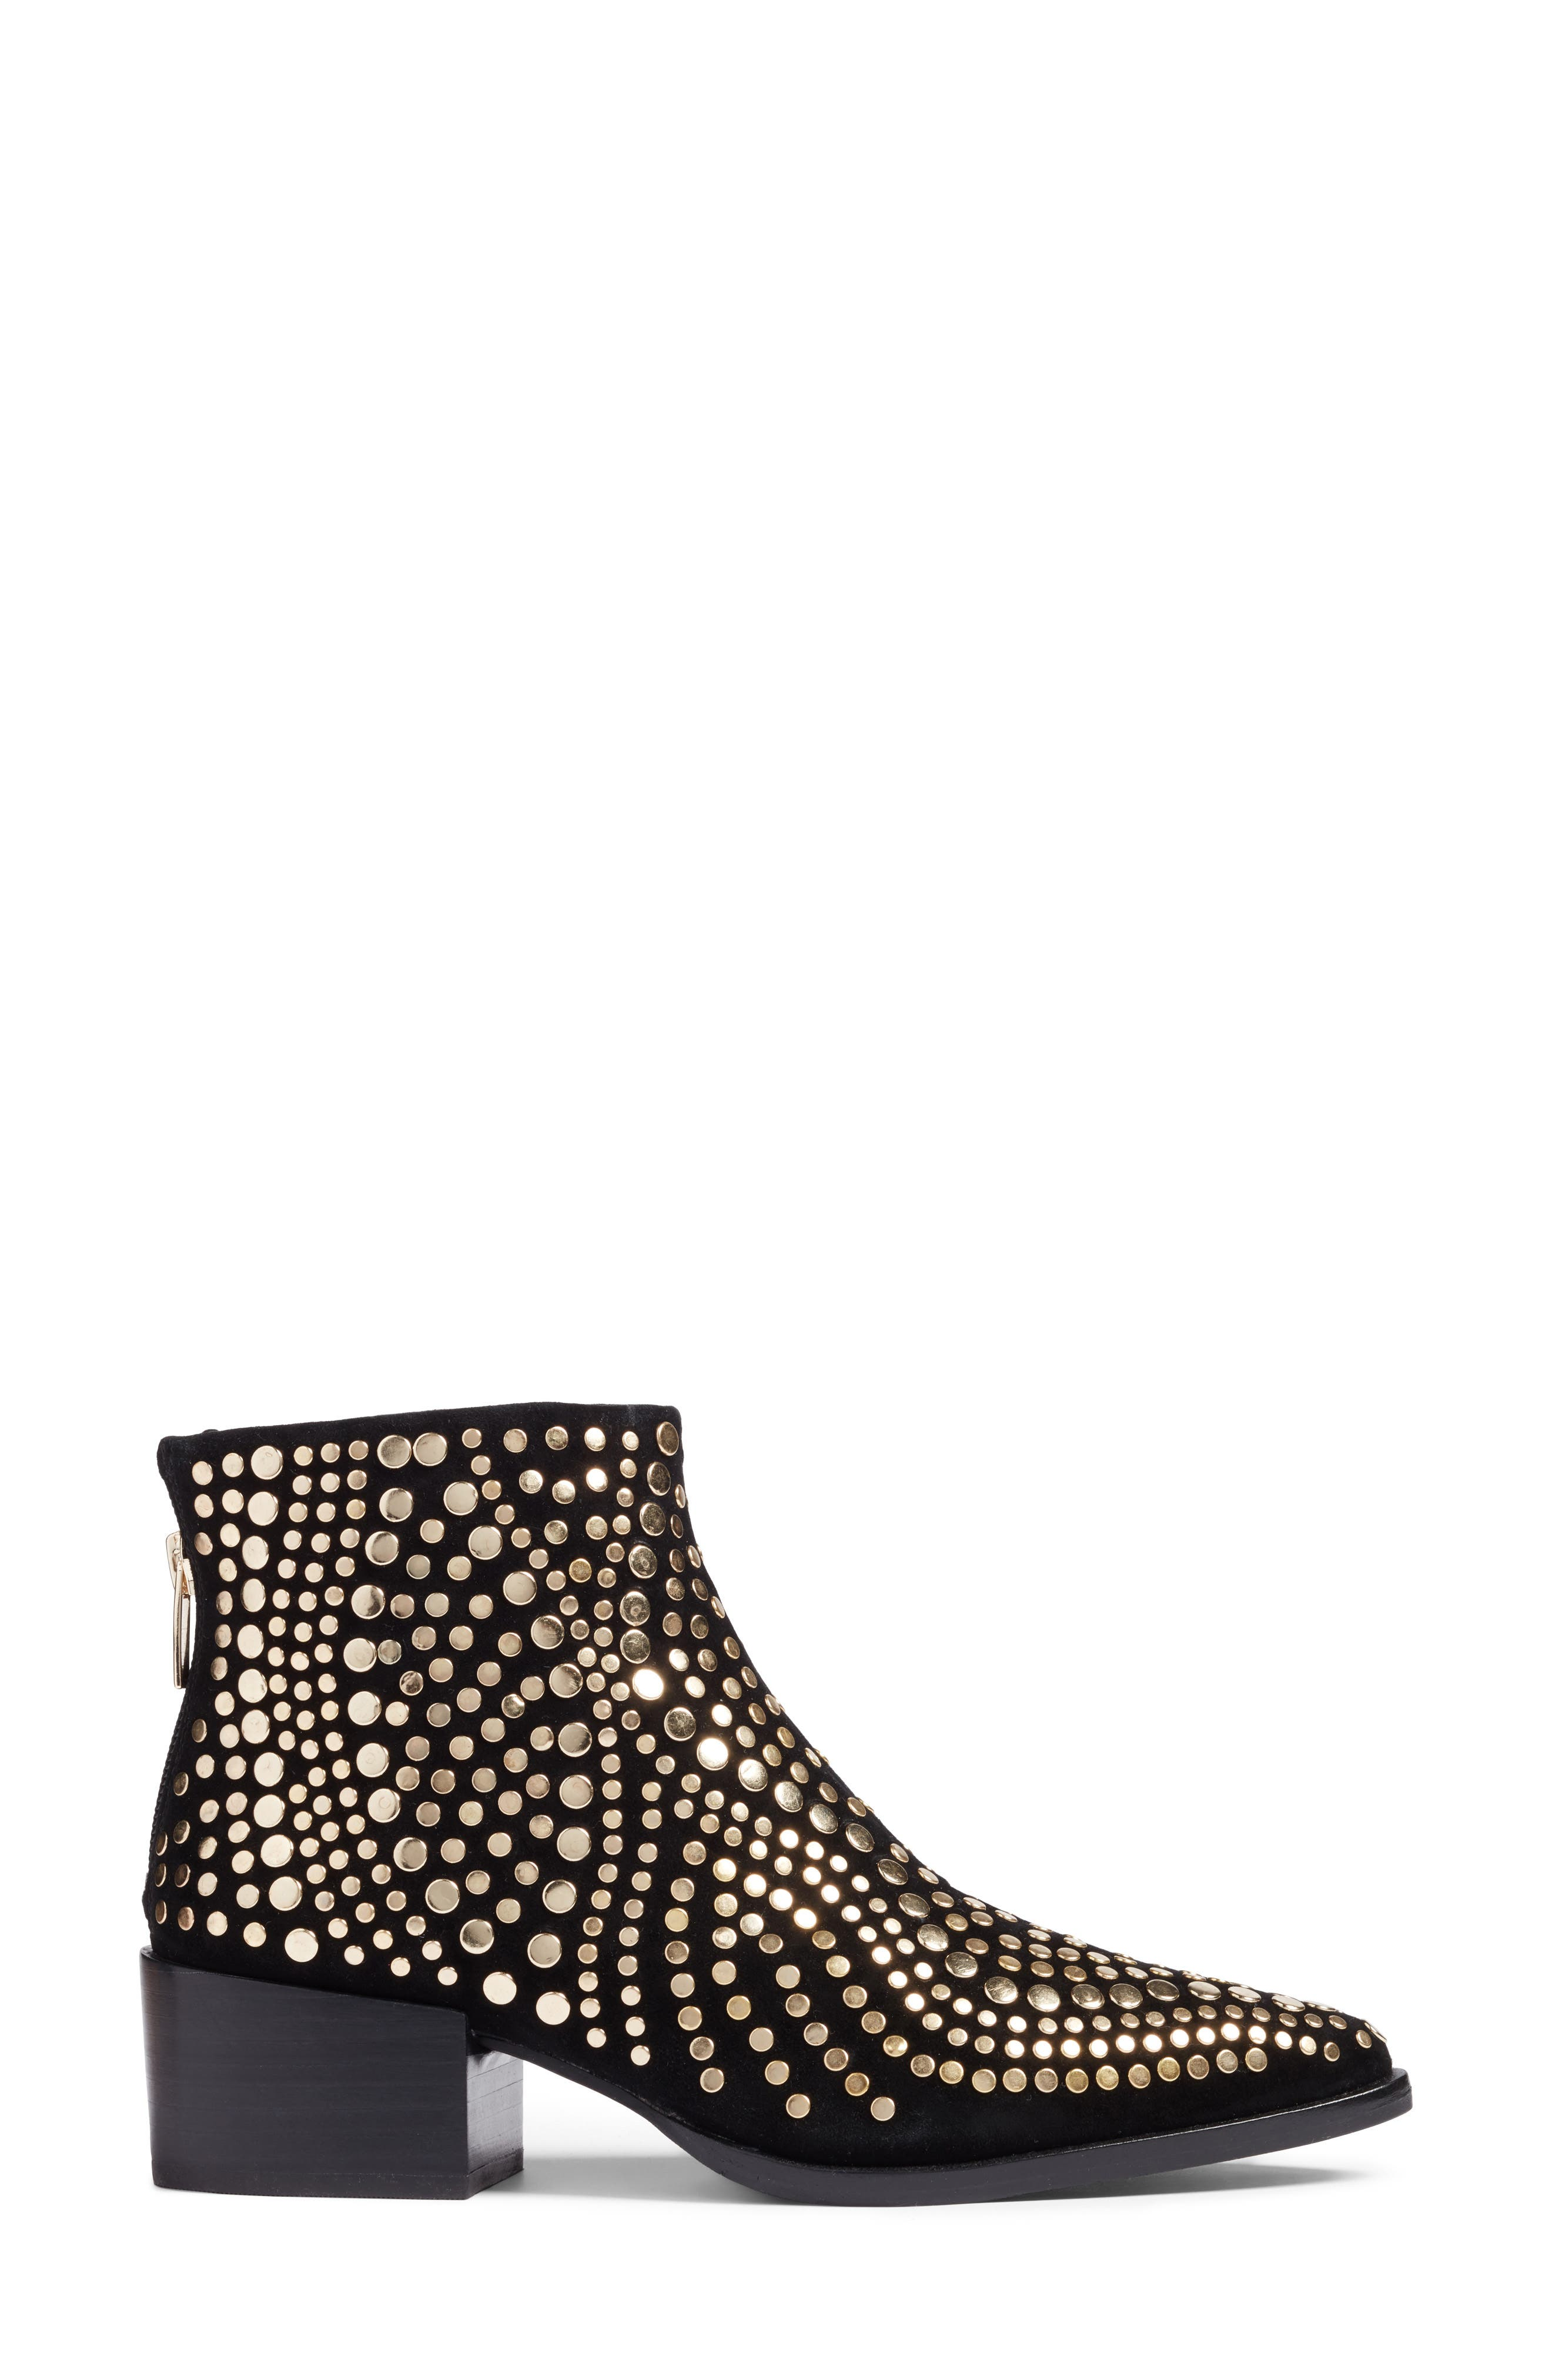 Edenny Studded Pointy Toe Bootie,                             Alternate thumbnail 3, color,                             002